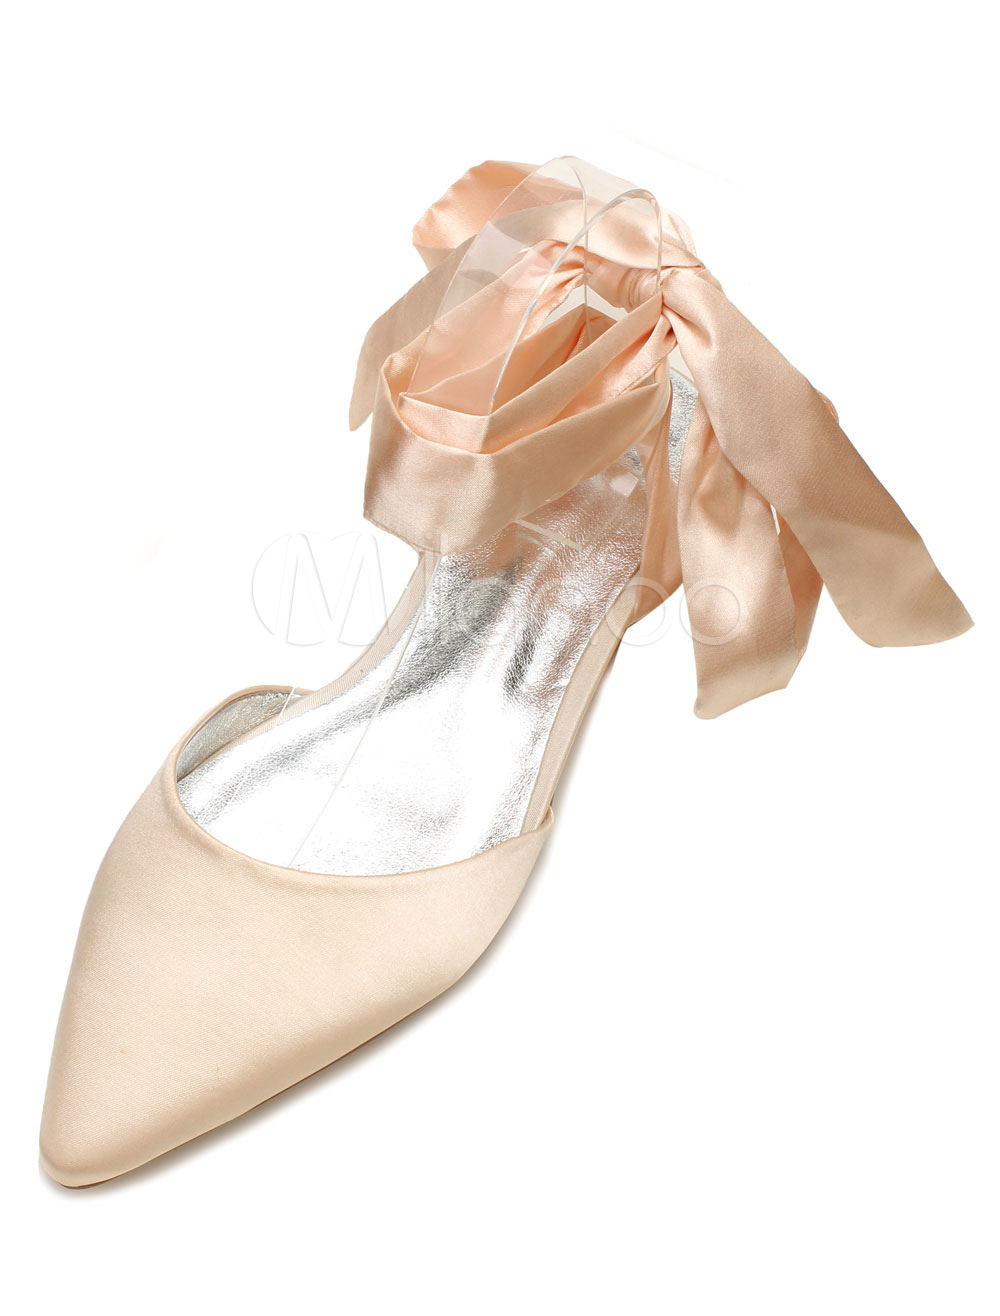 White Bridal Shoes Satin Pointed Toe Lace Up Flat Wedding Shoes For Women